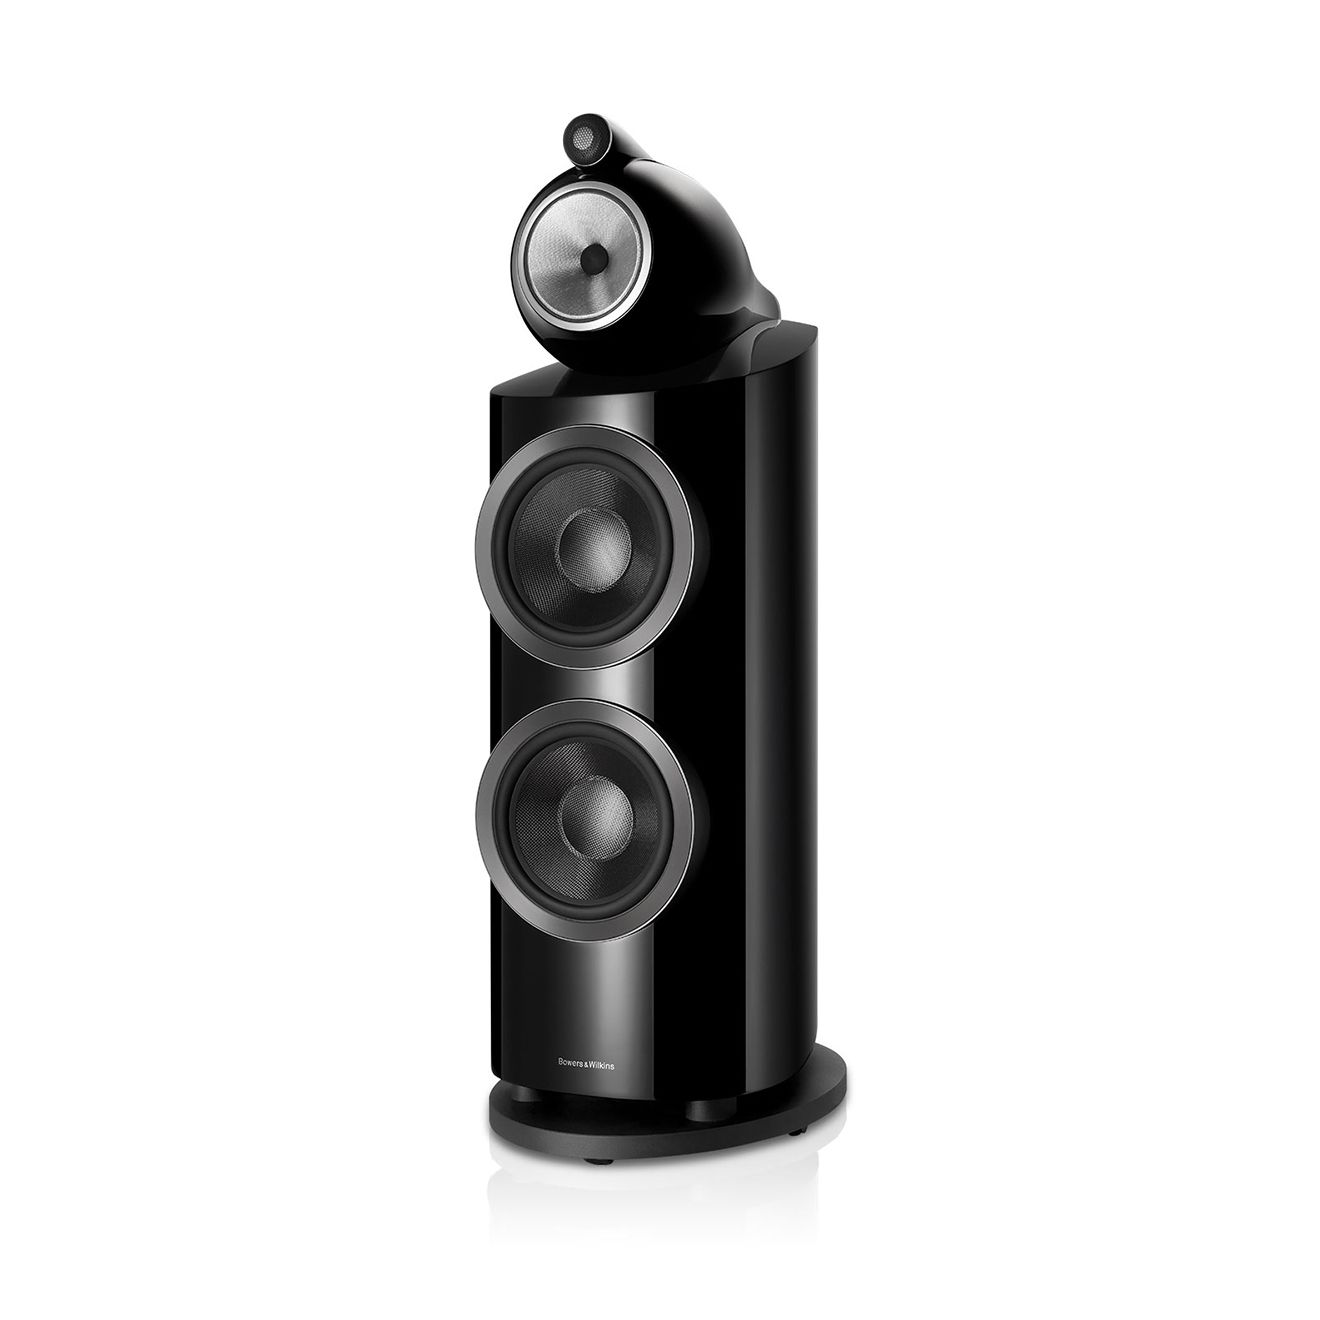 800-black-800-series-diamond-speakers.jpg